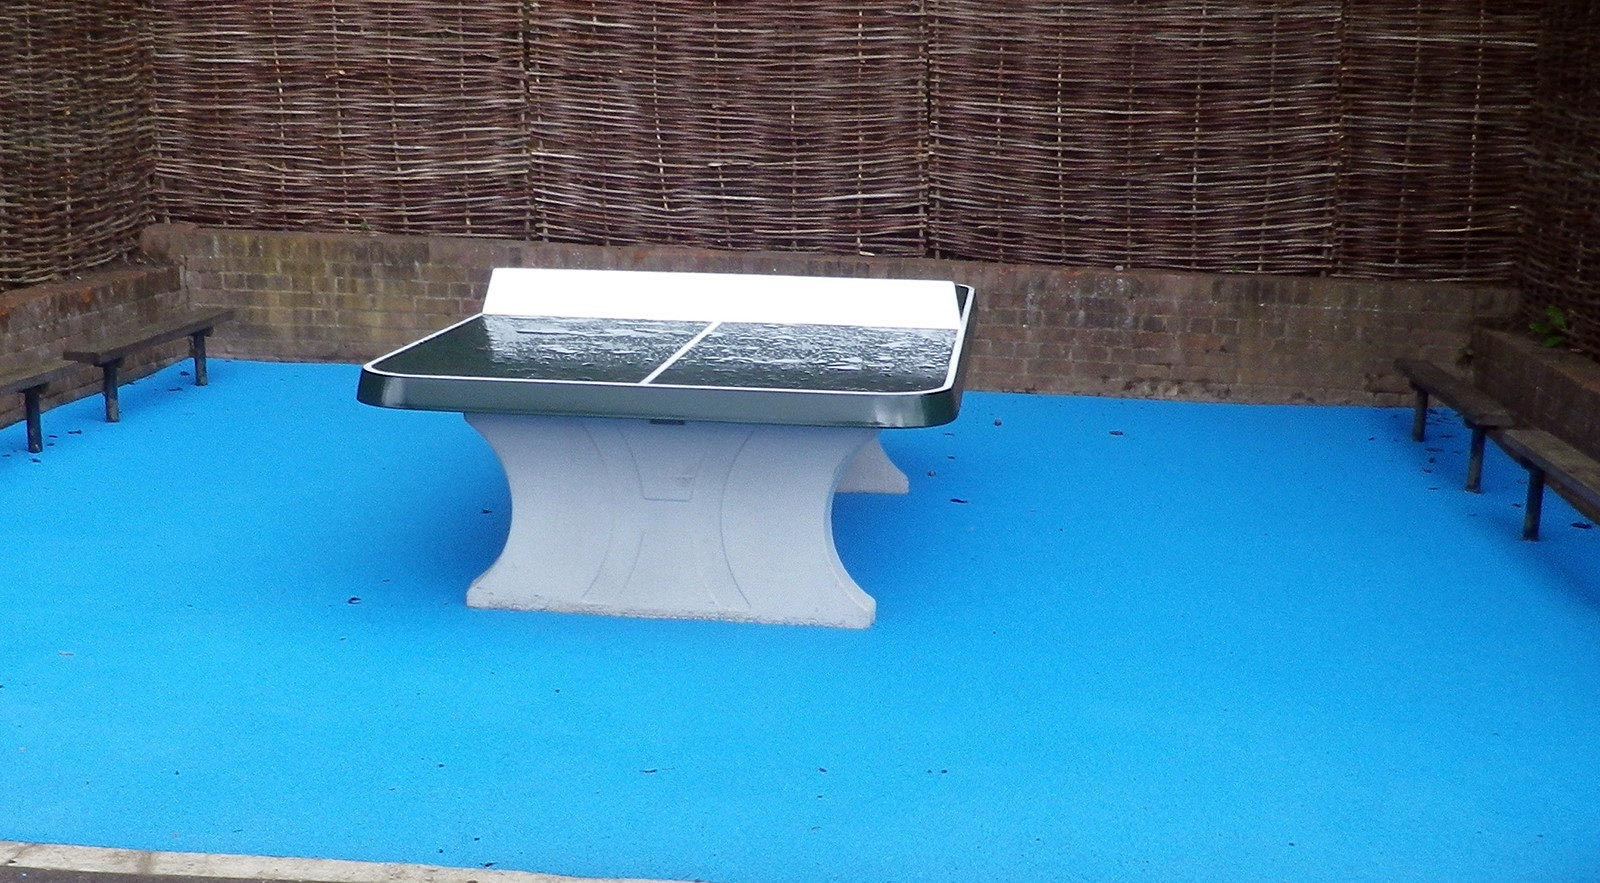 outdoor table tennis table on wet pour rubber surface